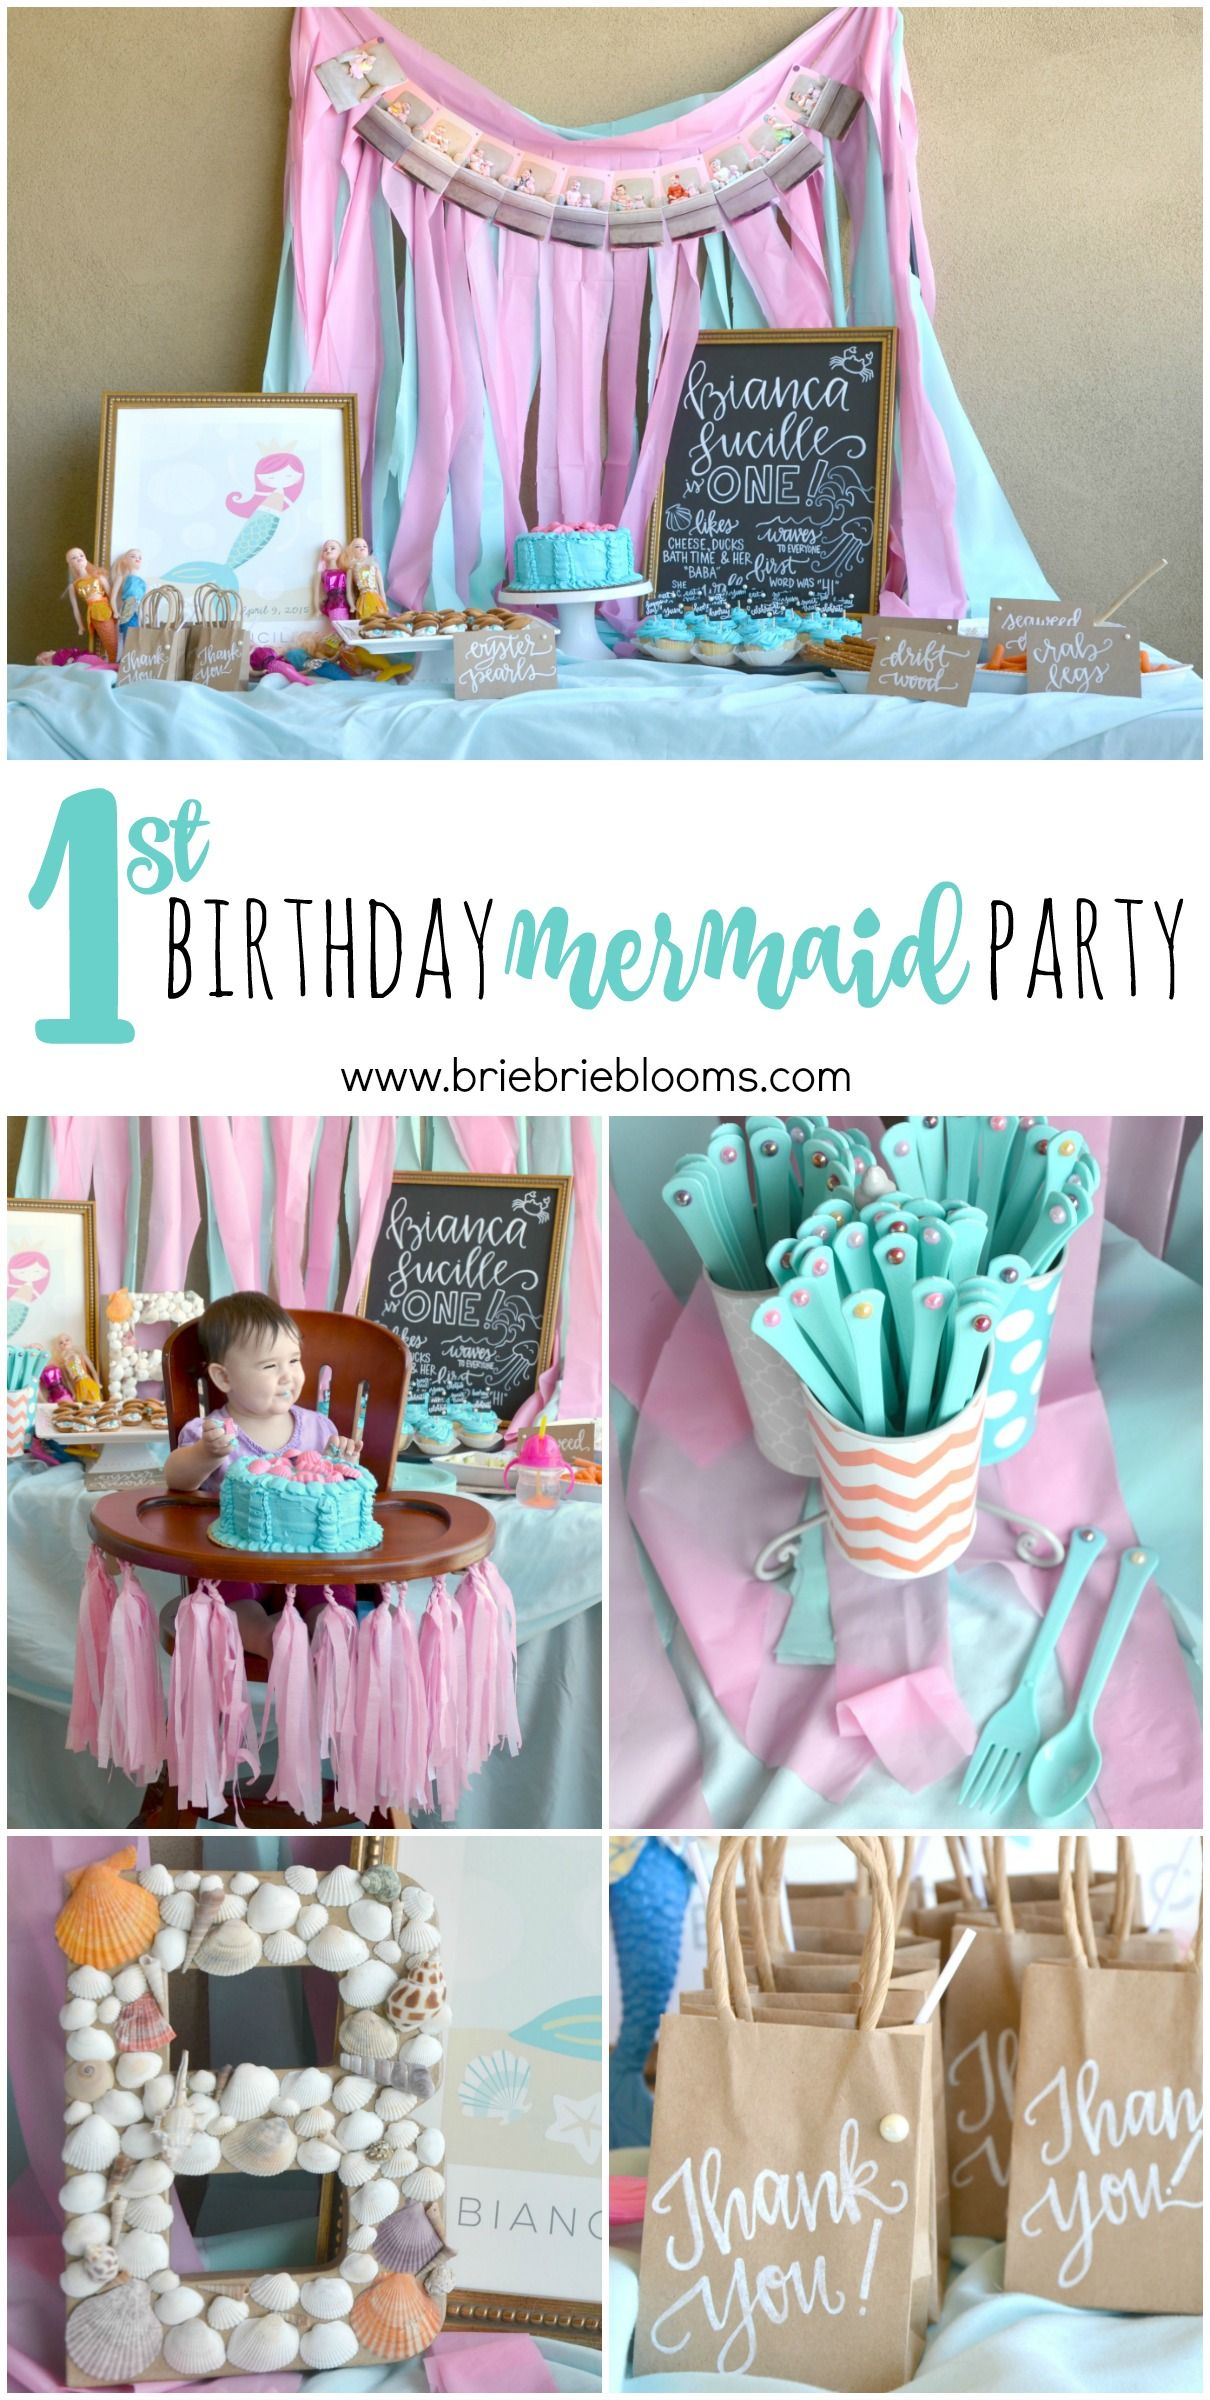 This First Birthday Mermaid Party Is Beautiful The Whimsical Pink And Turquoise Theme Was Further Embellished By Pearls